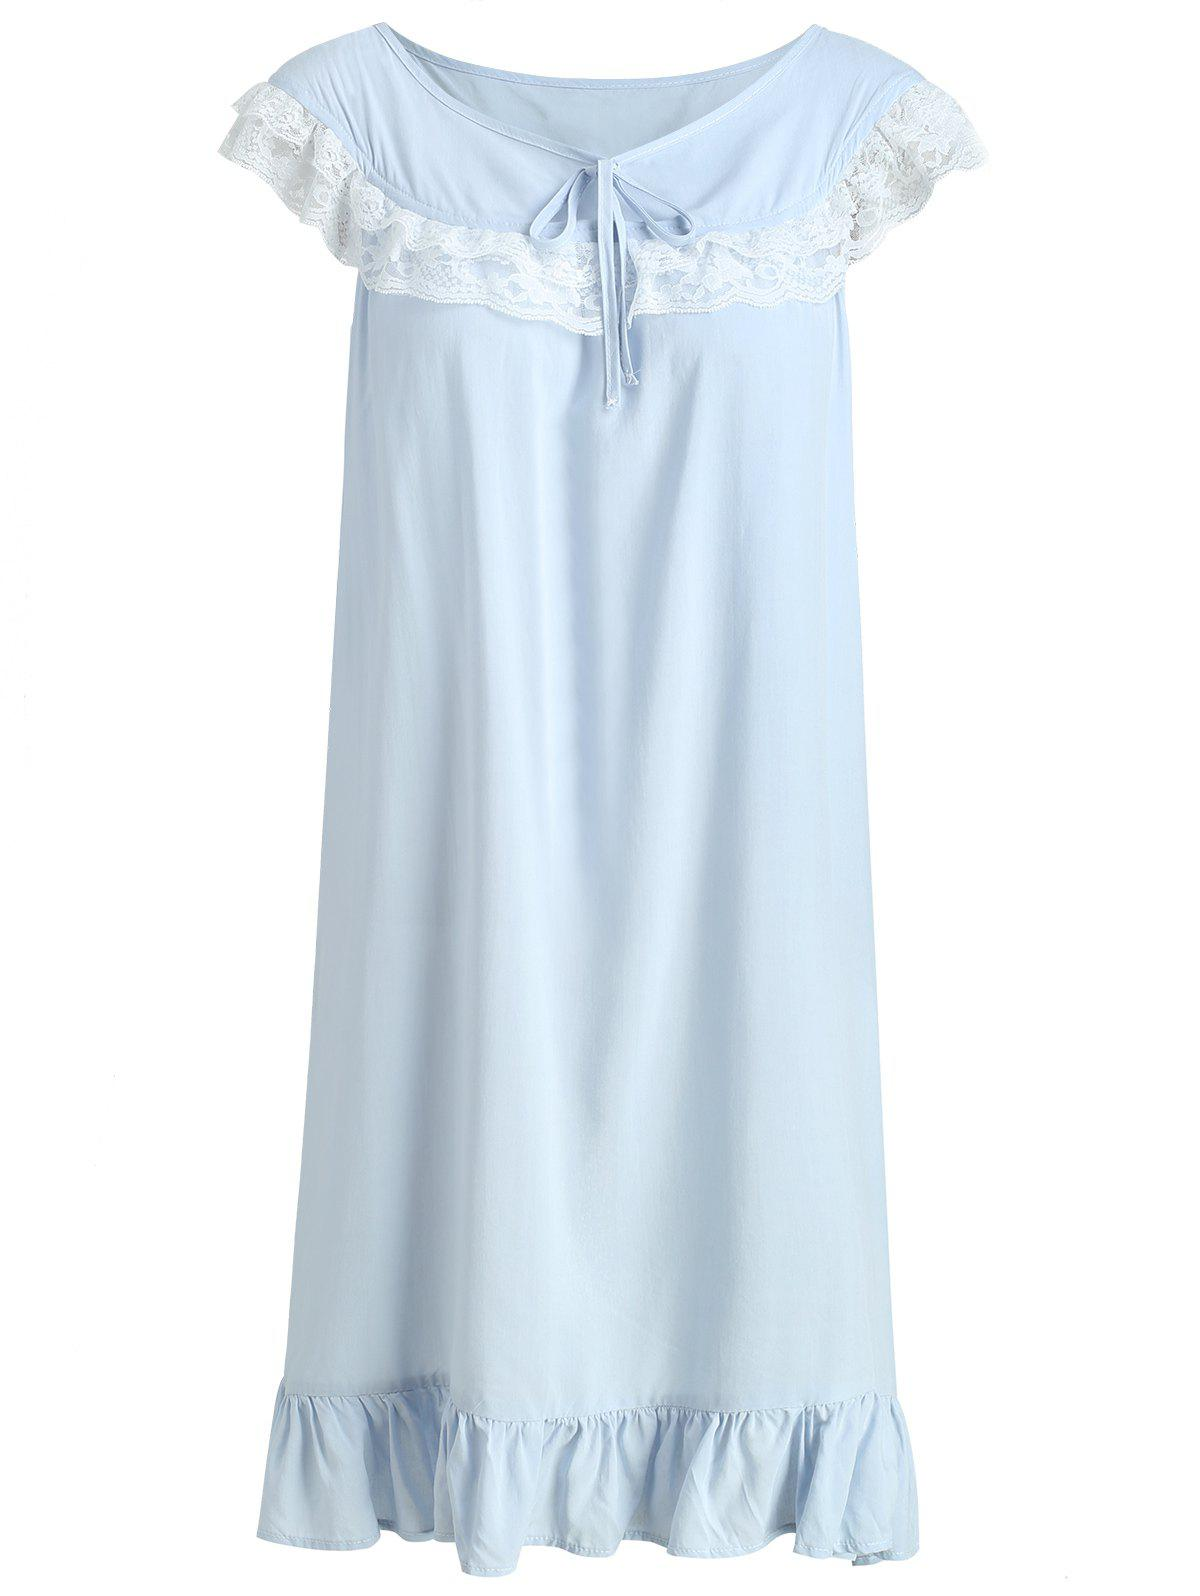 Unique Flounce Lace Insert Bowknot Sleeping Dress